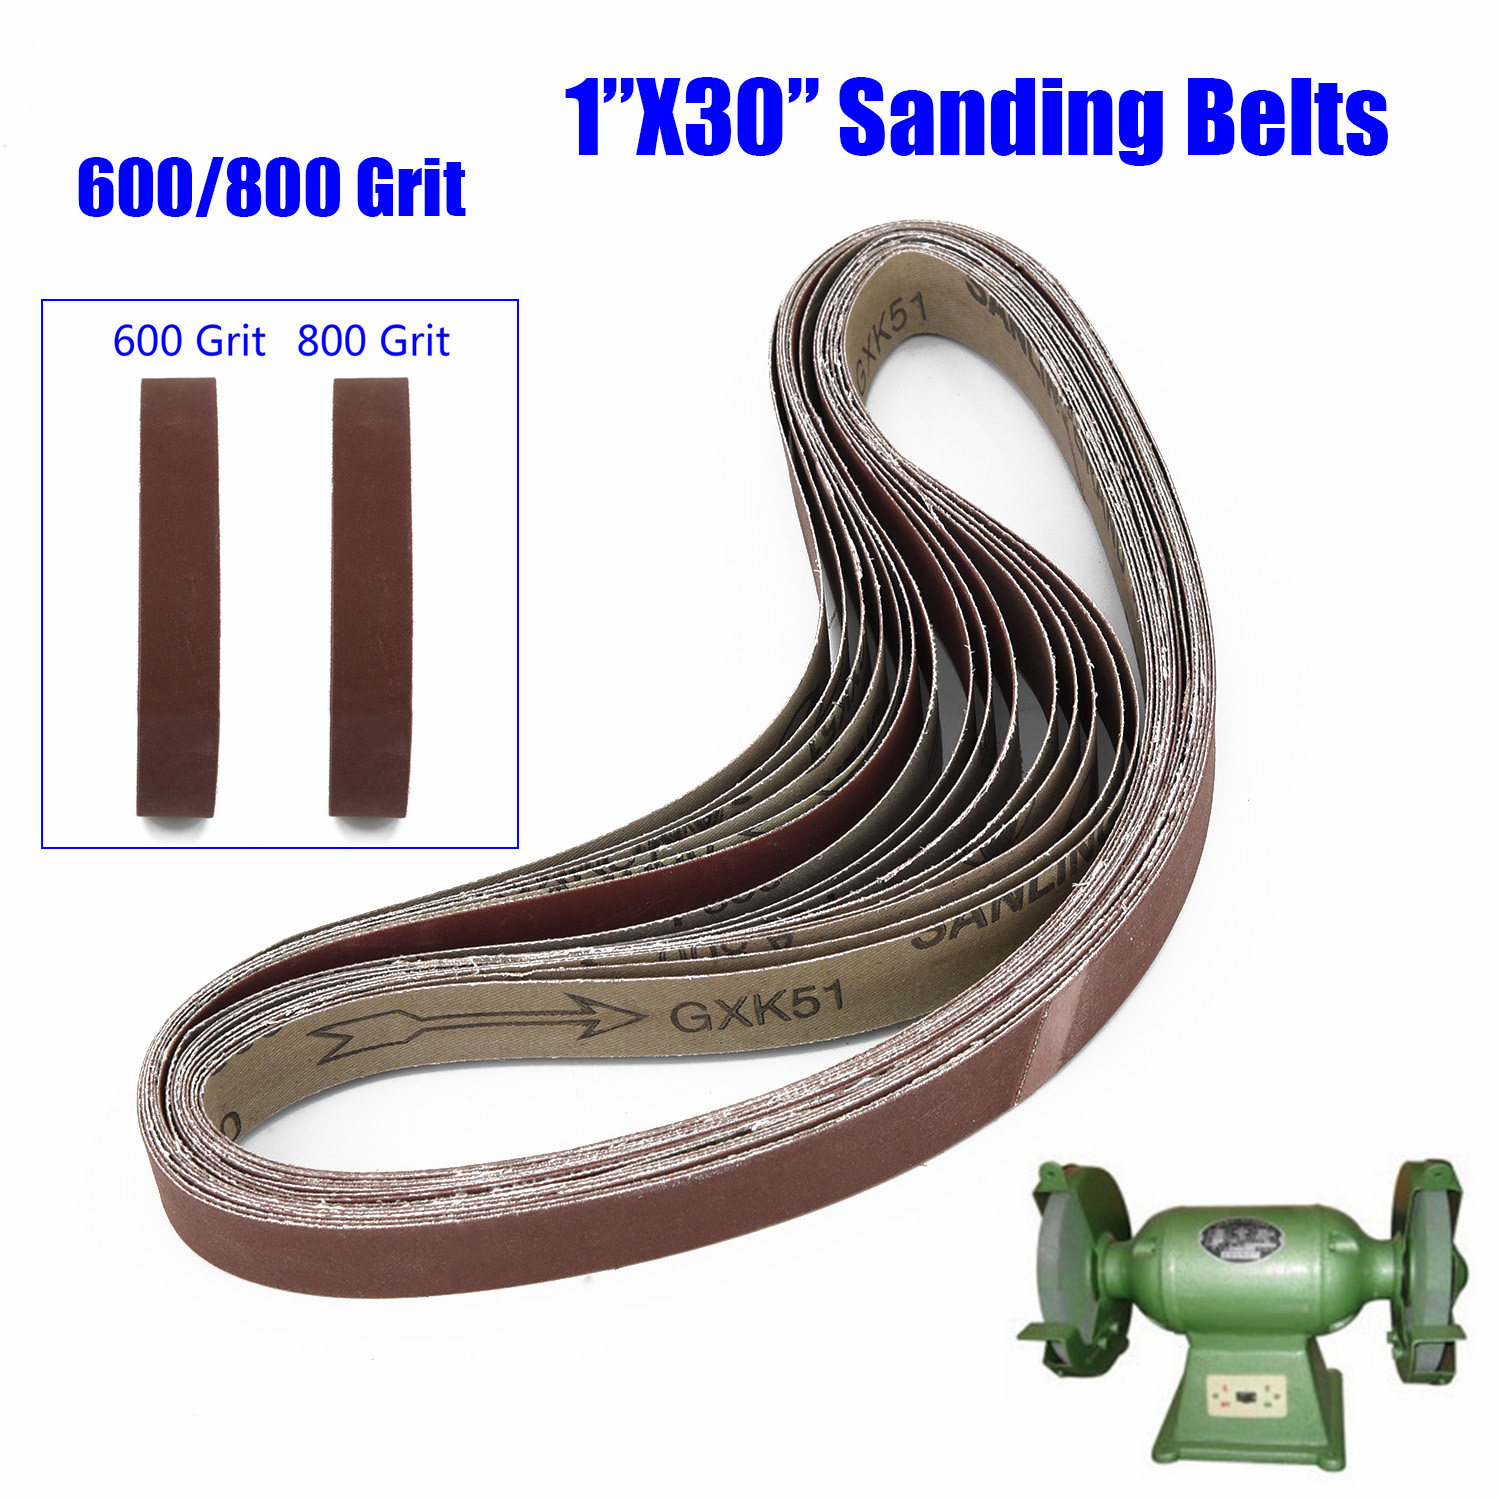 15pcs 25 *762mm Aluminum Oxide Abrasive Belt Sanding Band 600/800/1000 Grit For Wood Soft Metal Polishing